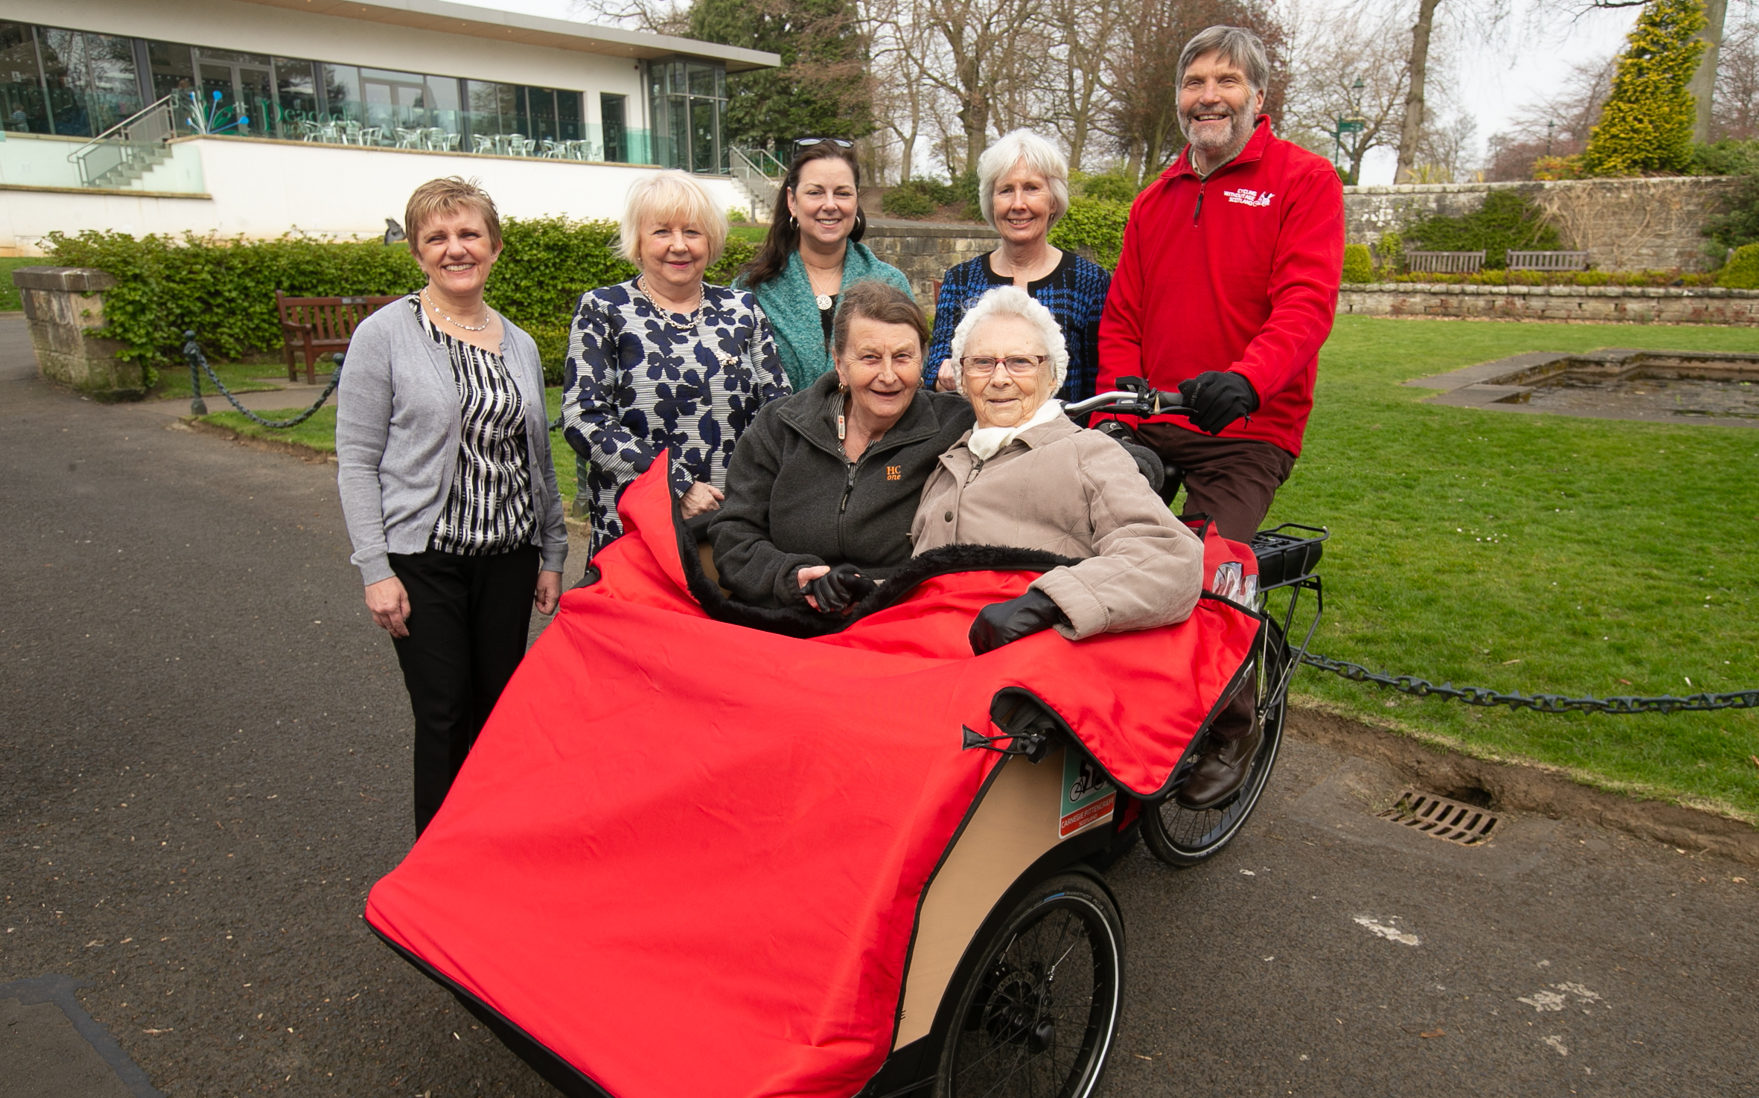 Residents of The Beeches Care Home try out the trishaws in Pittencrieff Park.  Group pic includes Cllrs Judy Hamilton, Helen Law and Jean Hall Muir alongside Ruth Ray (Trustee and Sports Convener for Carnegie Dunfermline Trust) and volunteer Frank Waterworth.